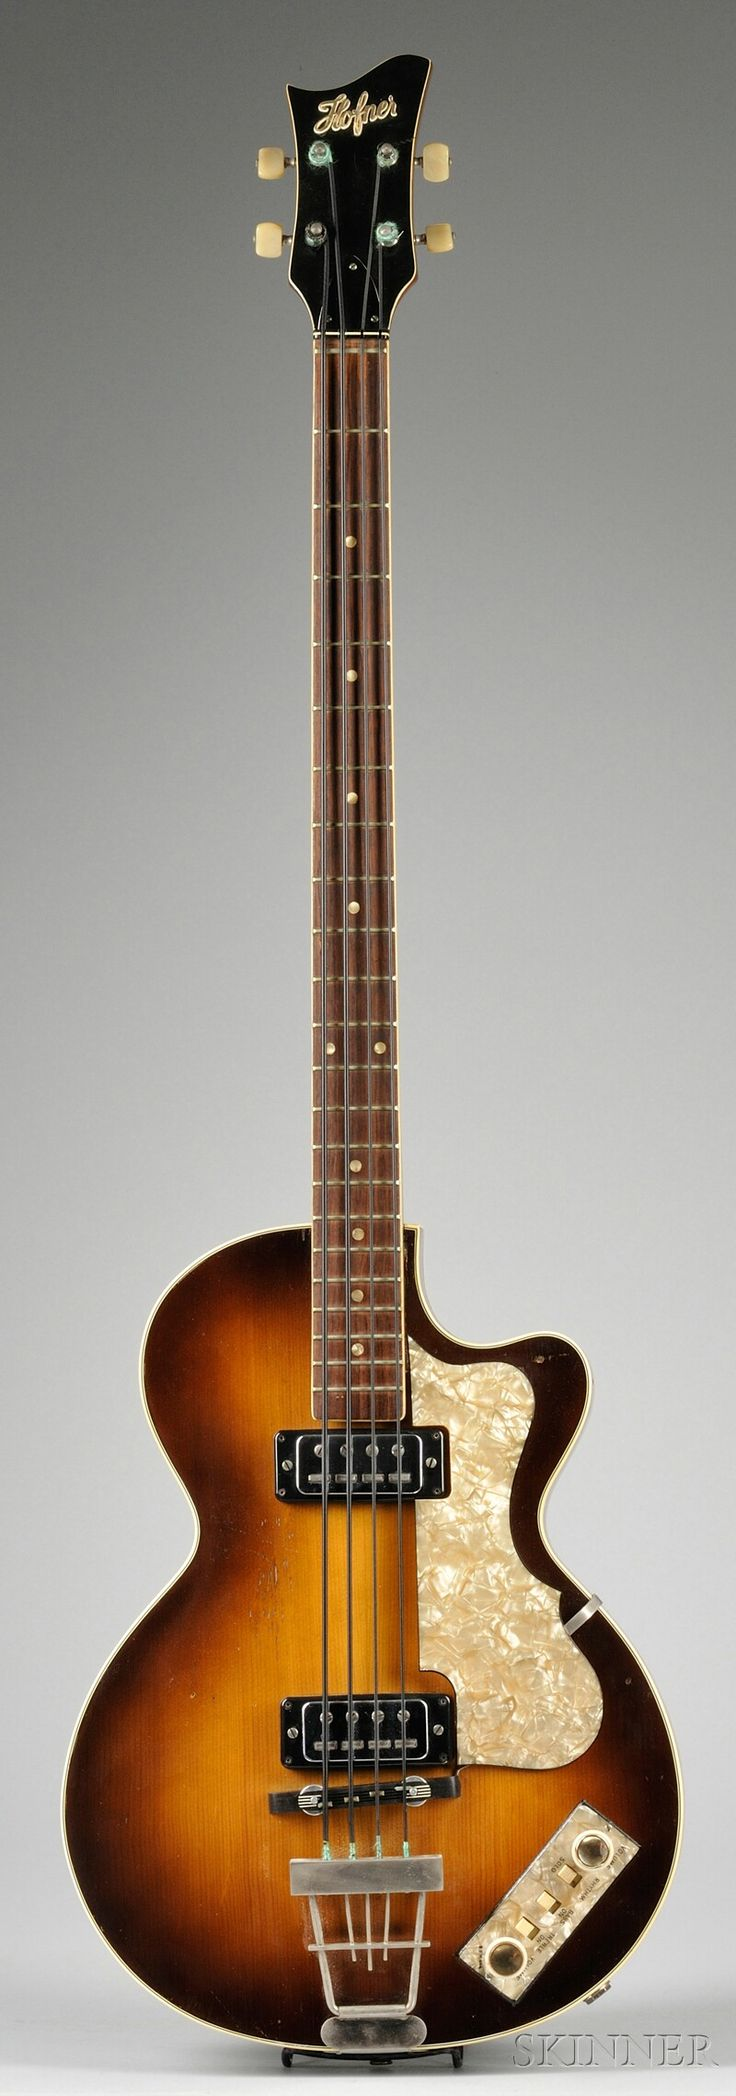 German Electric Bass Guitar, Karl Hofner Company, Schonbach, 1965, Model Club Bass | Sale Number 2569B, Lot Number 3 | Skinner Auctioneers